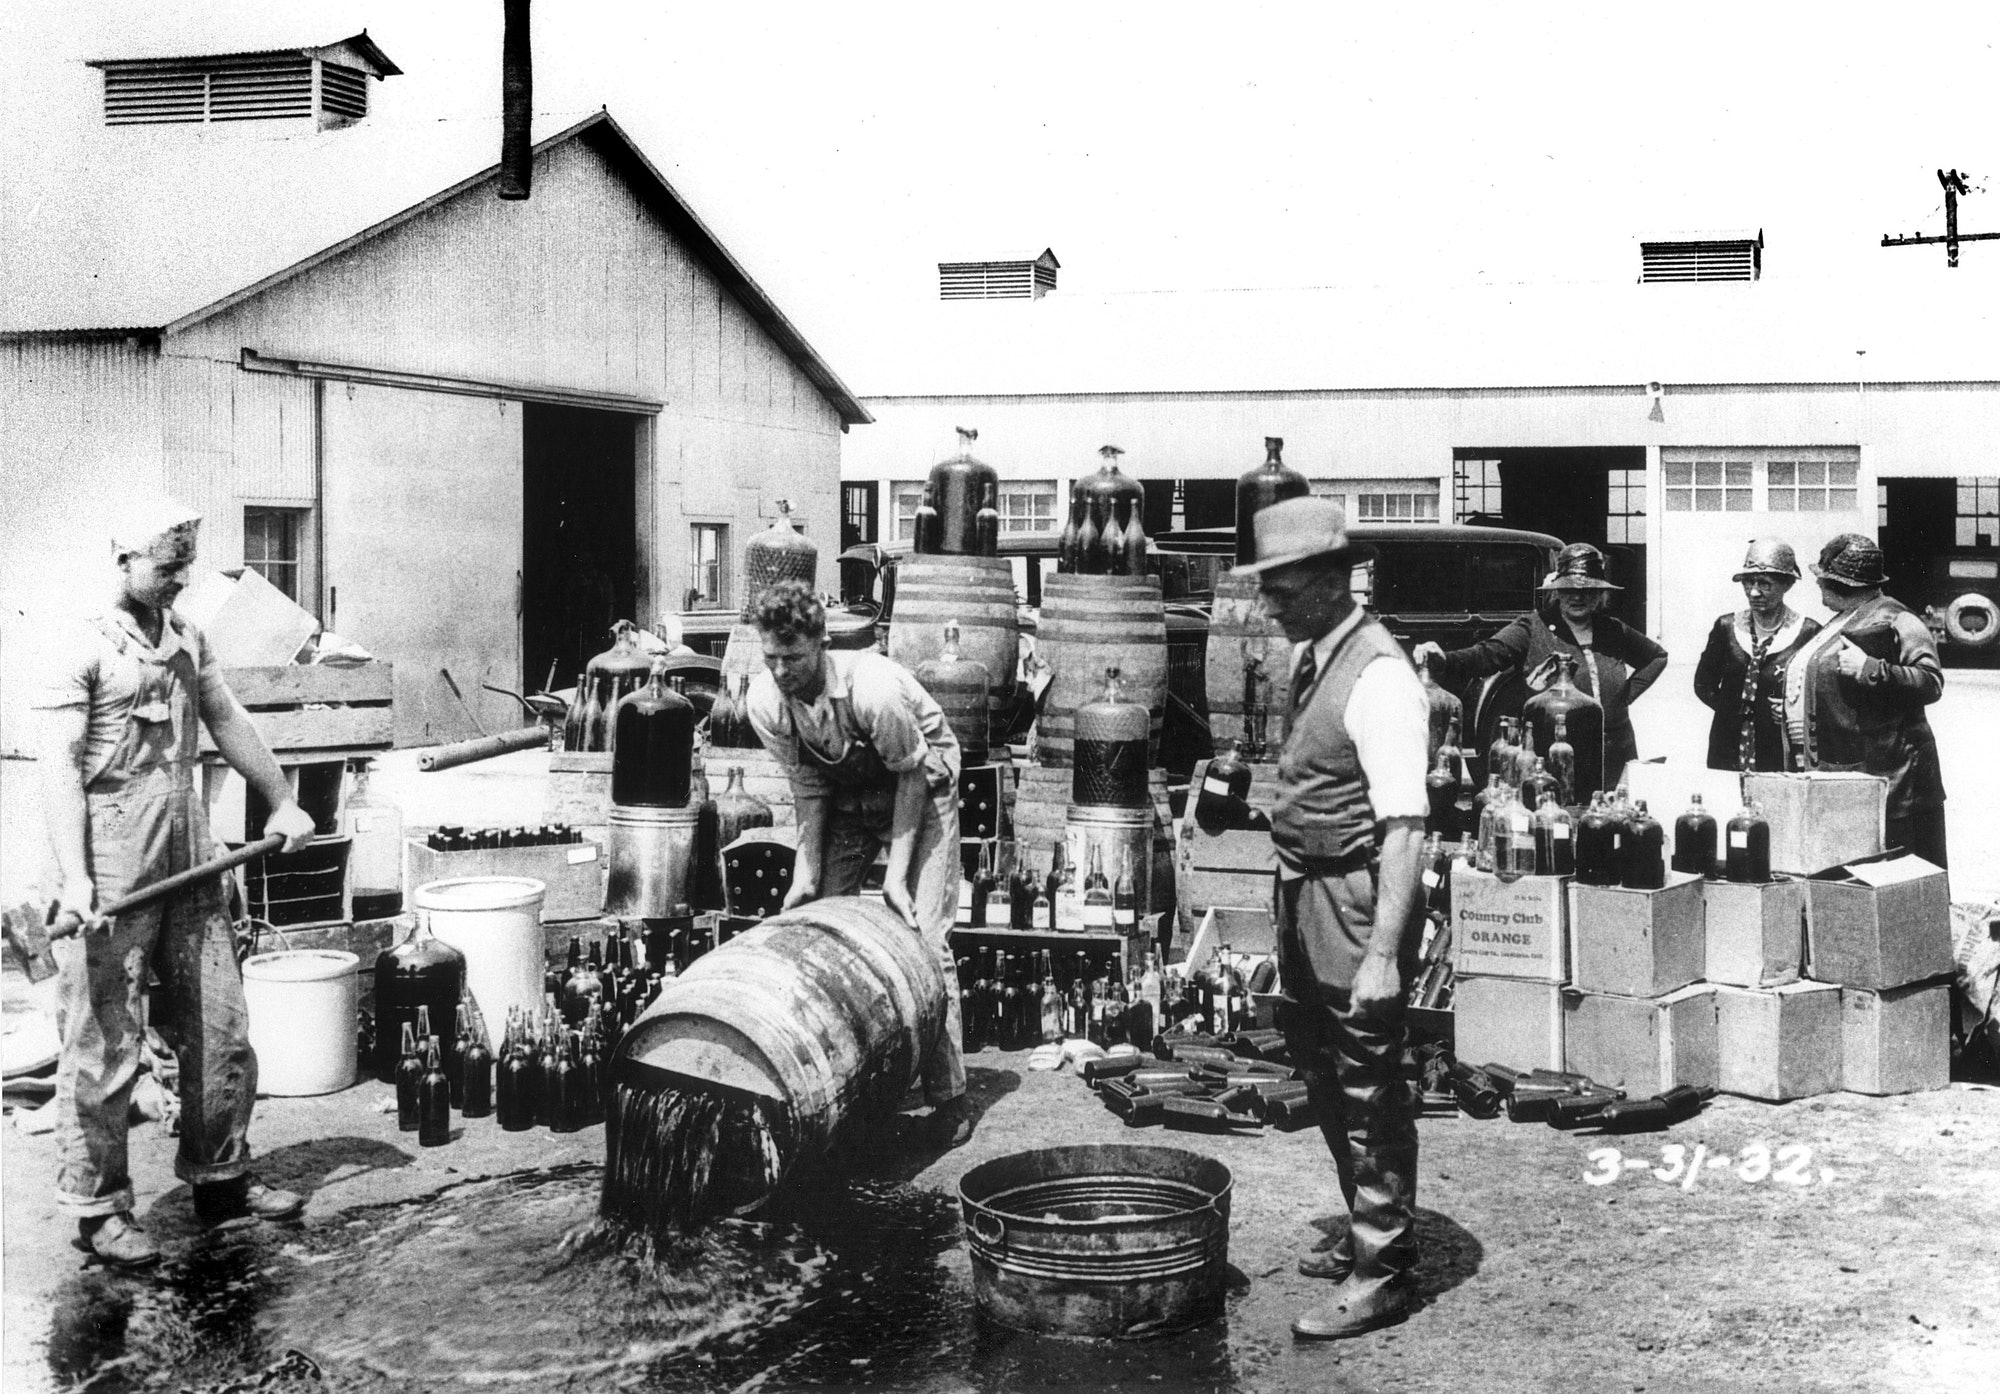 Orange County Sheriff's deputies dump illegal booze in Santa Ana, Calif. in this 1932 photograph.